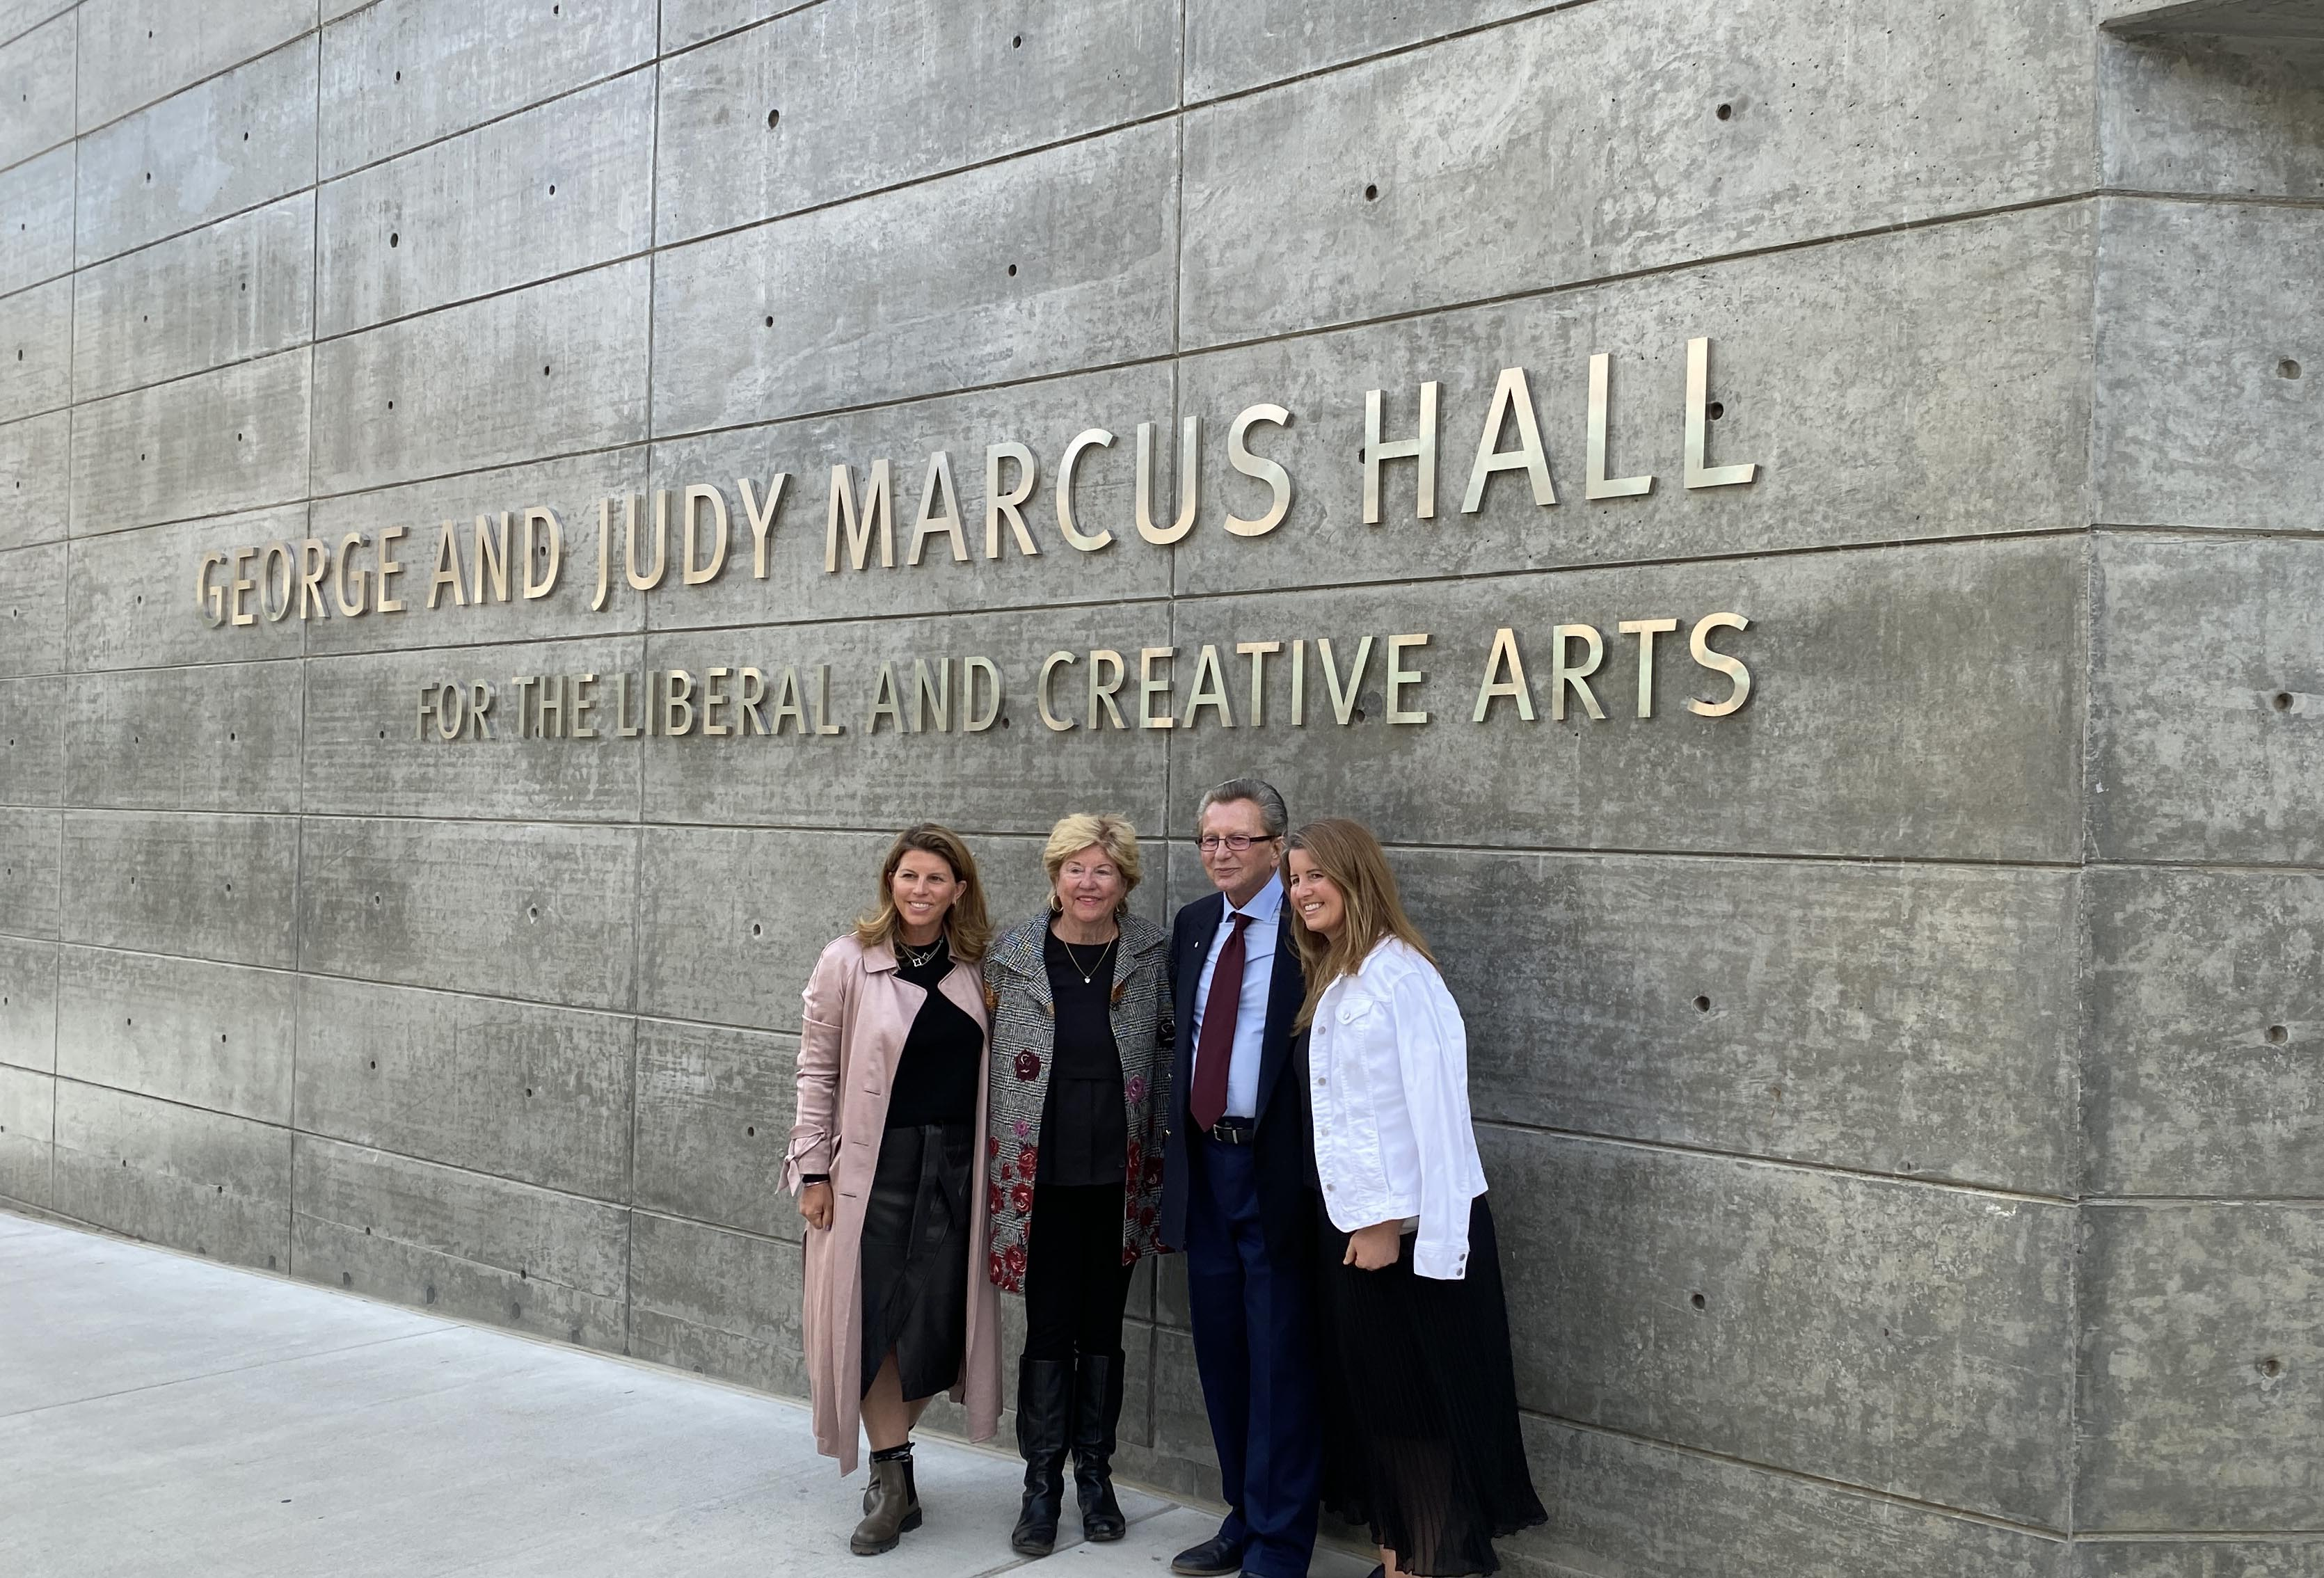 George & Judy Marcus stand in front of Marcus Hall, with the building's full name imprinted on the wall above their heads